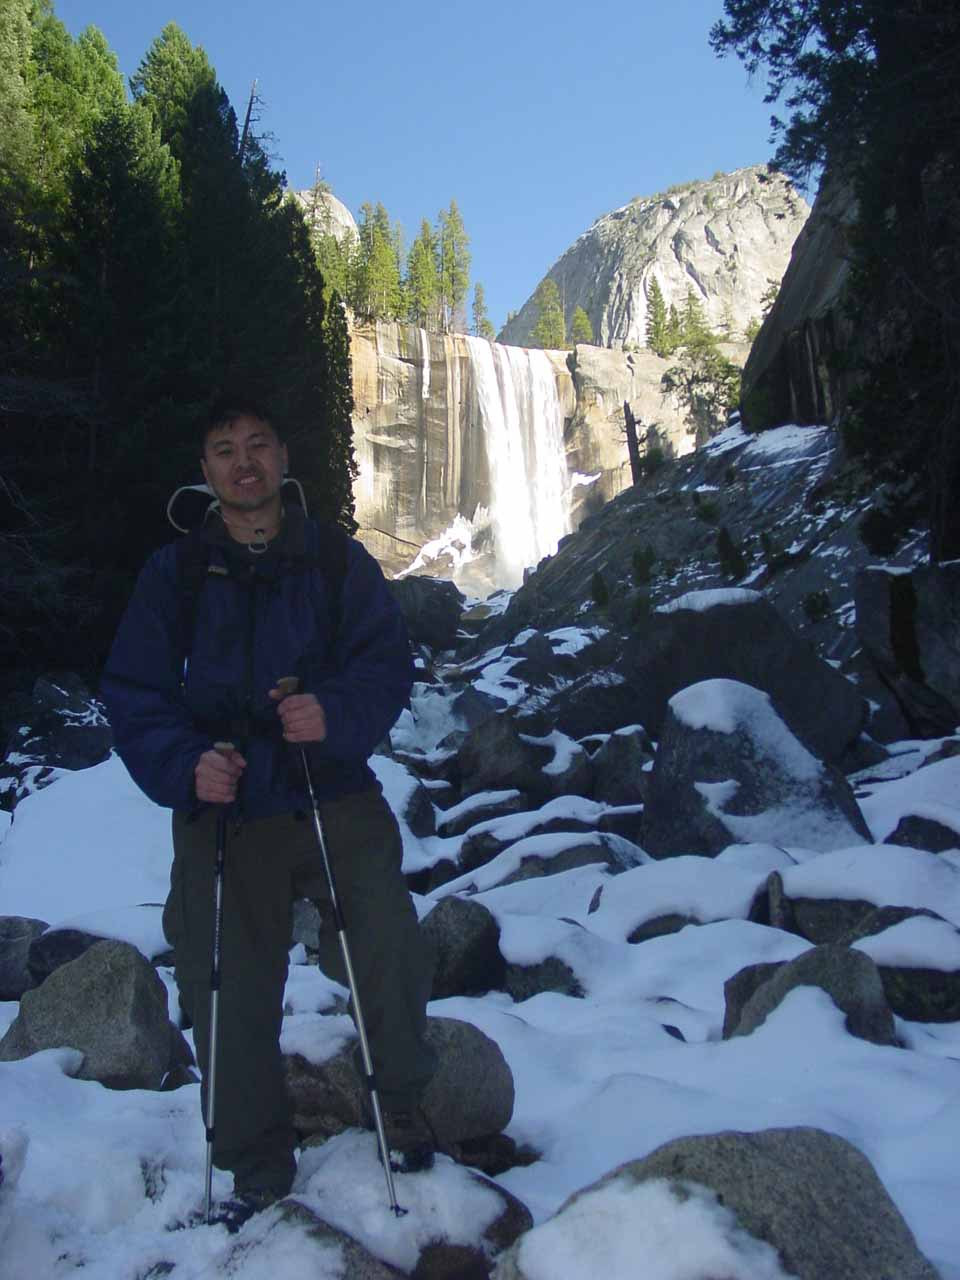 That's me in Yosemite in the Winter time and earning an income blogging about it on the World of Waterfalls